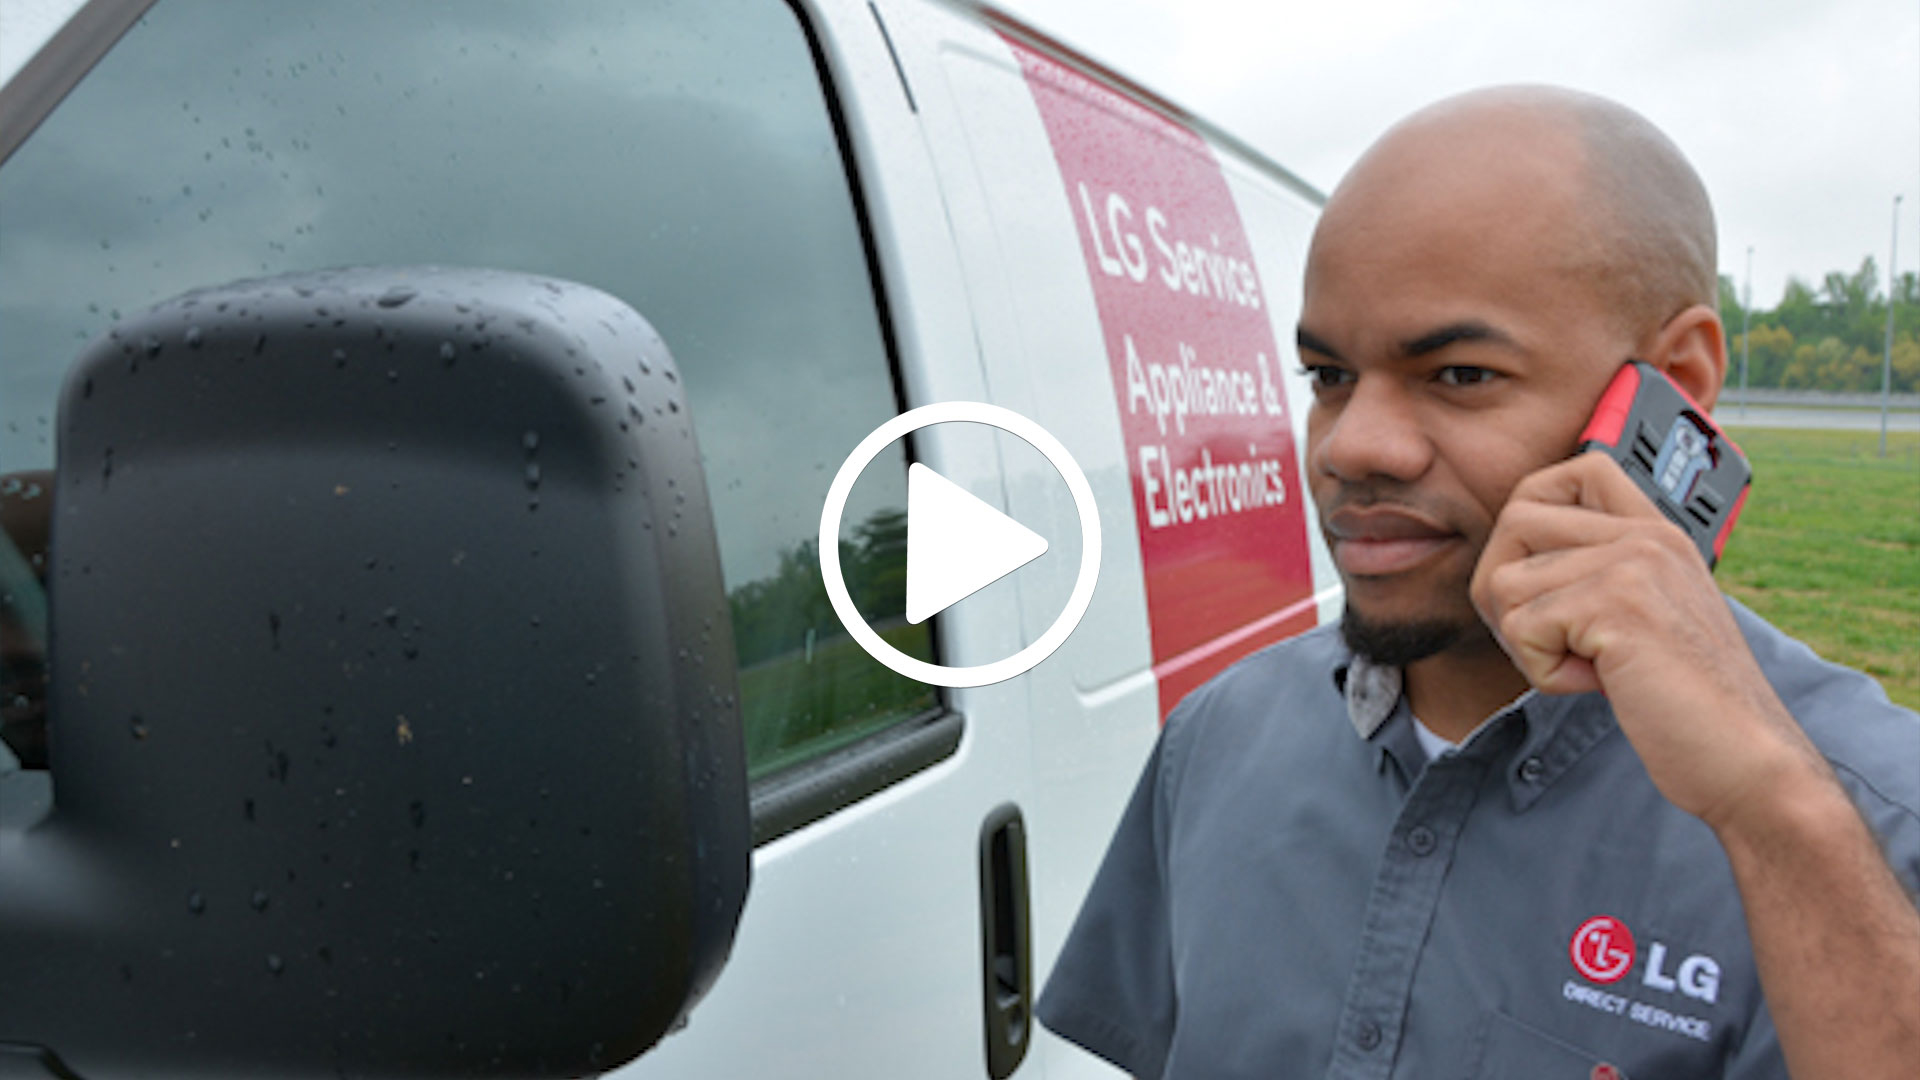 Watch our careers video for available job opening Field Service Technician in Baltimore, MD